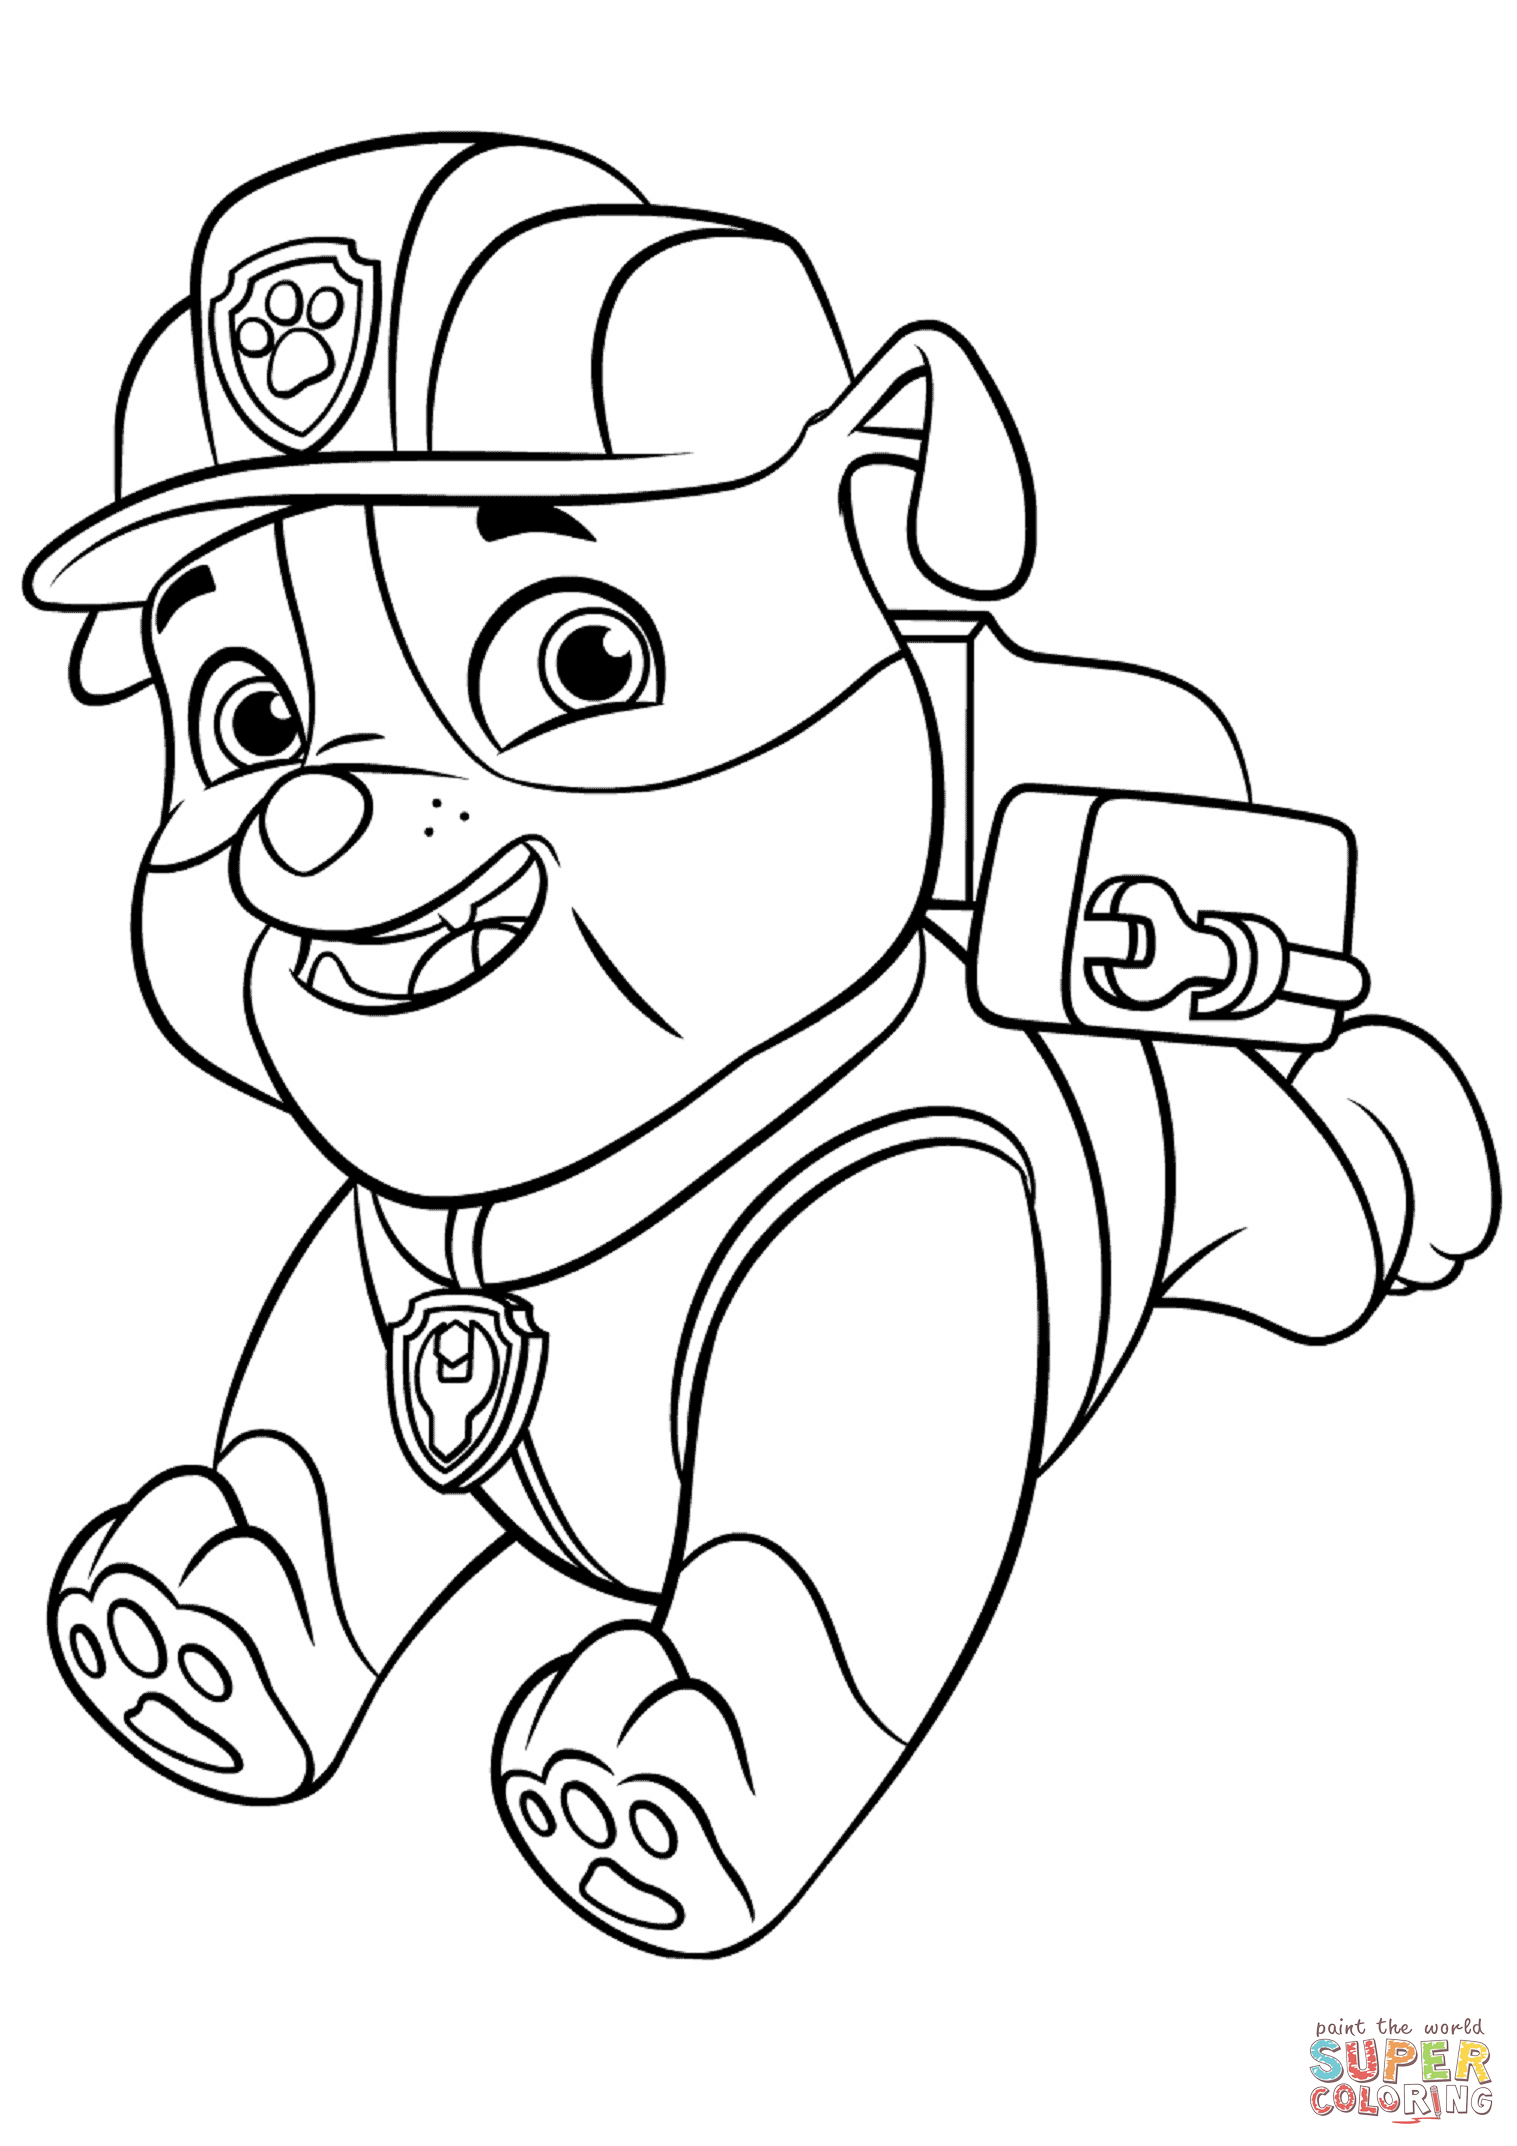 Backpack Coloring Page Paw Patrol Rubble With Backpack Coloring Page Free Printable